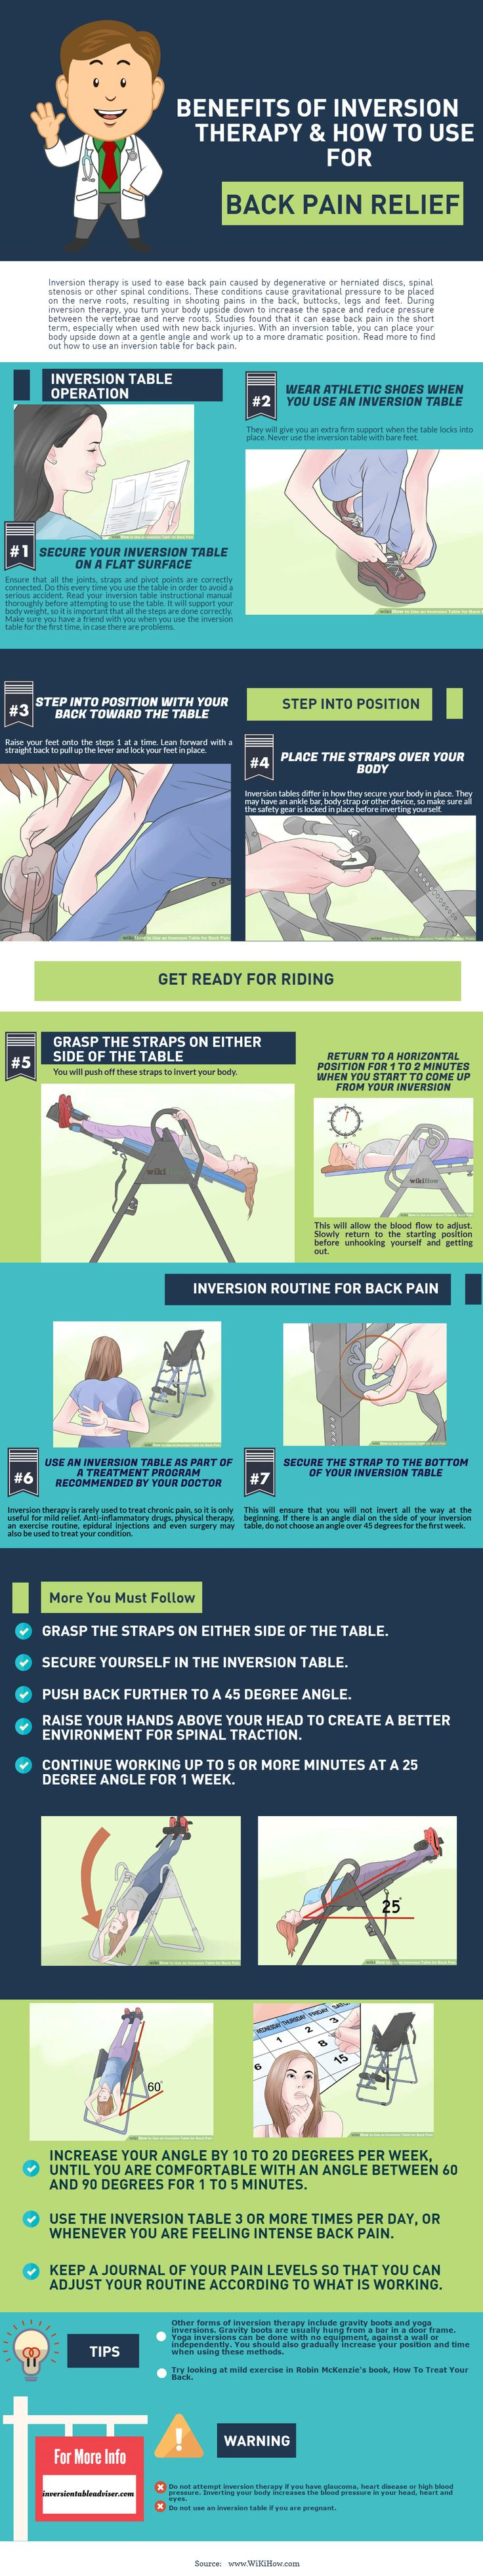 When you consider that almost every kind of exercise or task you undertake involves compressing the spine, you'll soon see why inversion therapy or using an inversion table is beneficial. If you take part in such pursuits as running, golf, biking, aerobics, skiing, or weightlifting, then you'll find that an inversion table can increase your enjoyment of these activities.Look at this Infograpics to understand how to use this .